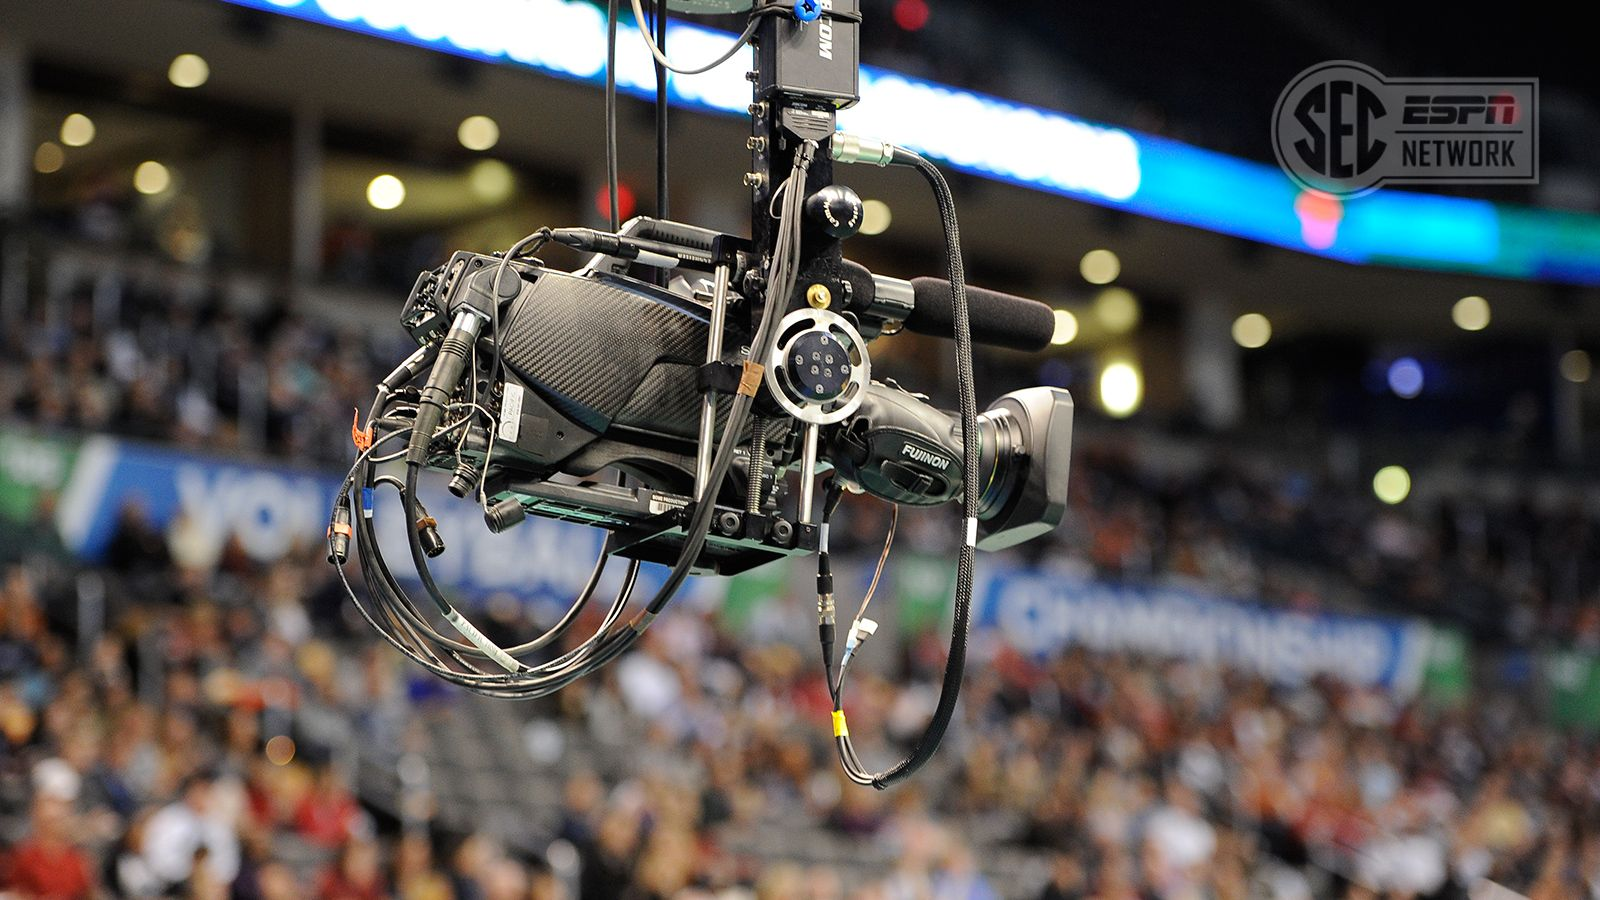 2015 SEC soccer, volleyball coverage